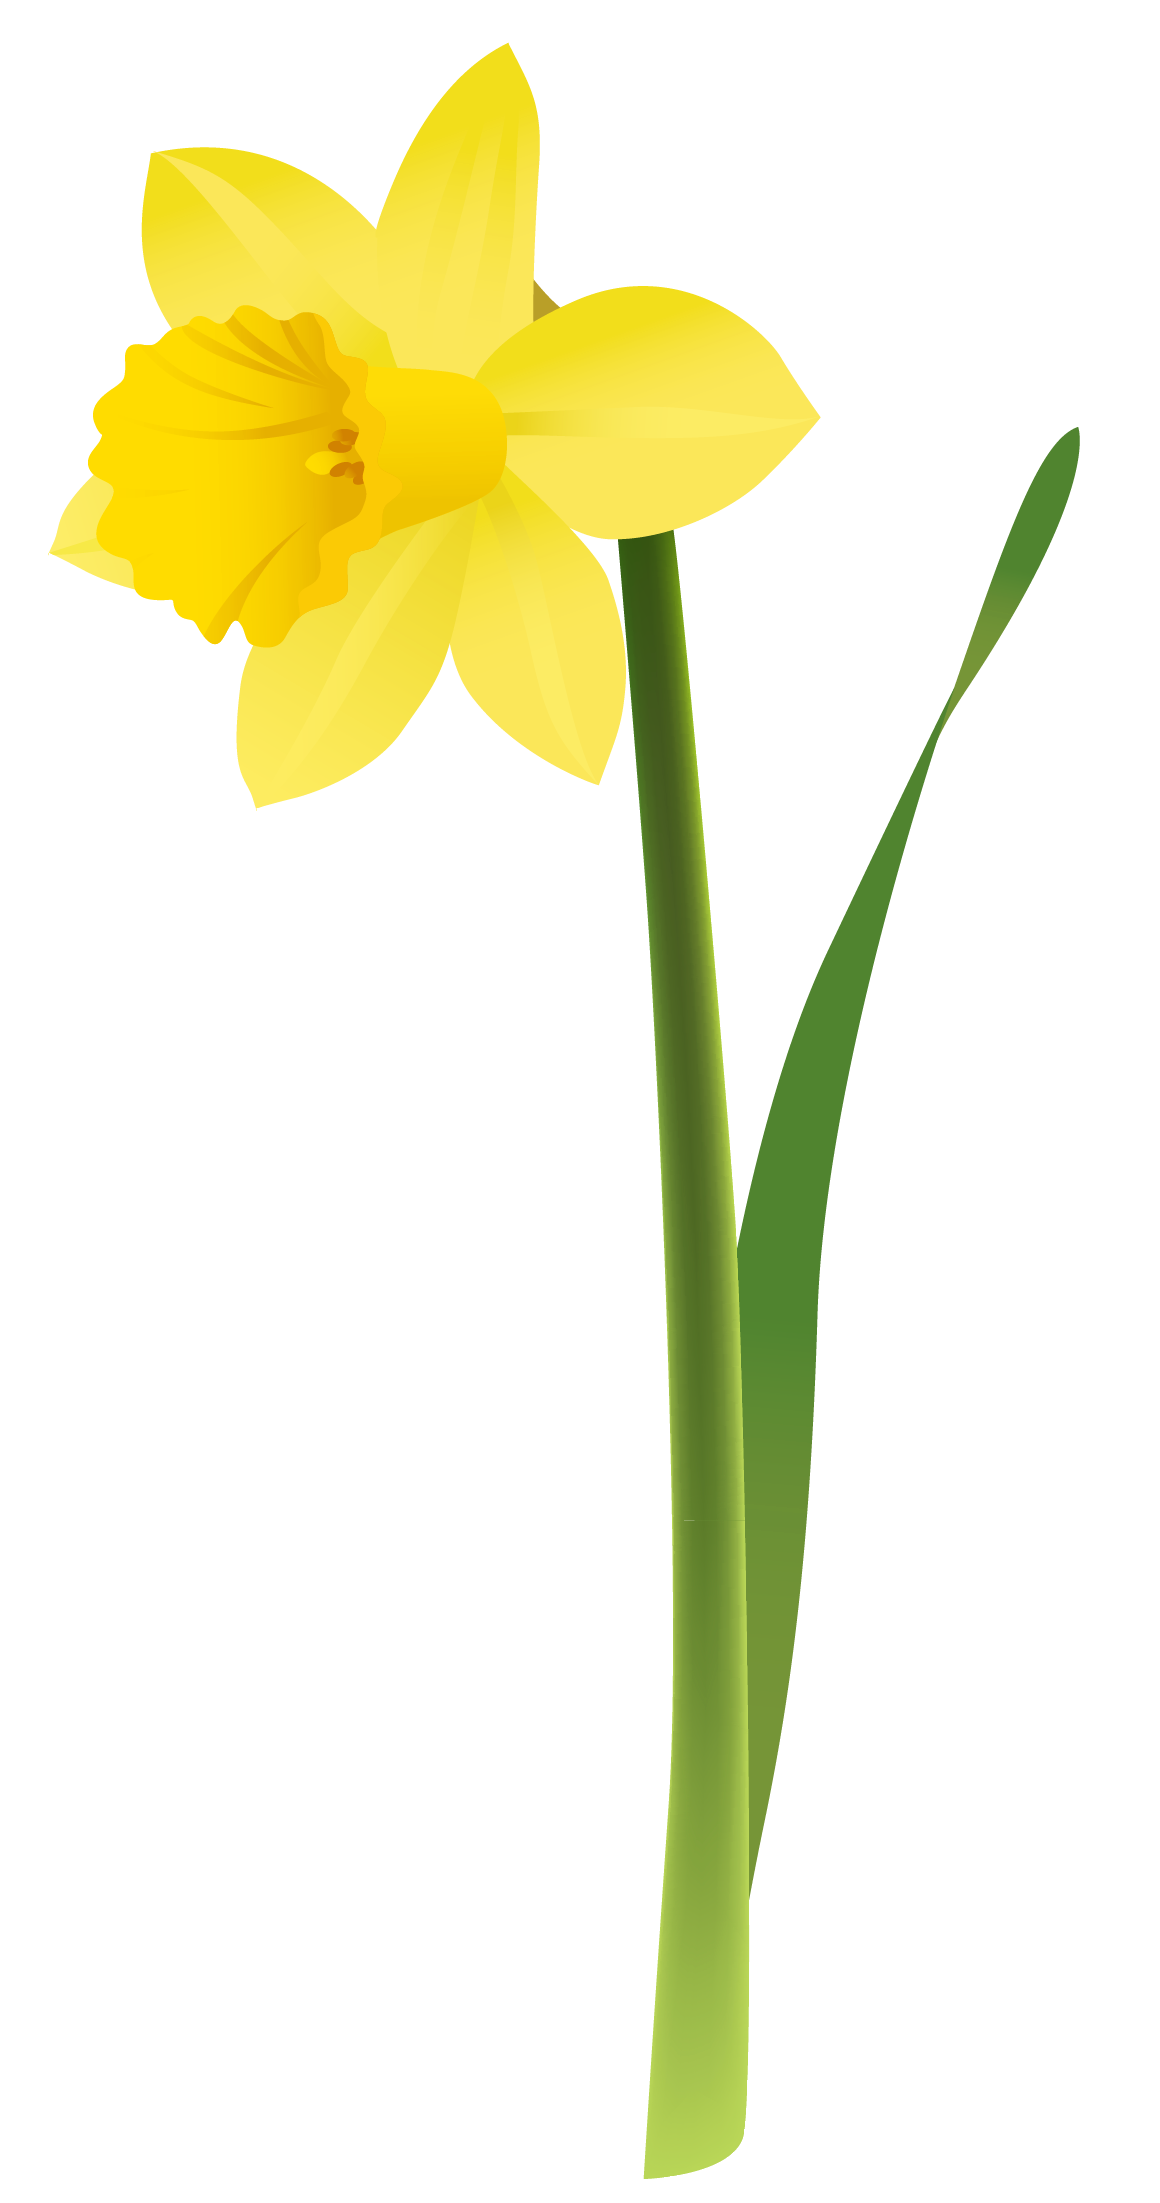 svg royalty free download Yellow daffodils gratitude pinterest. March clipart friendship flower.